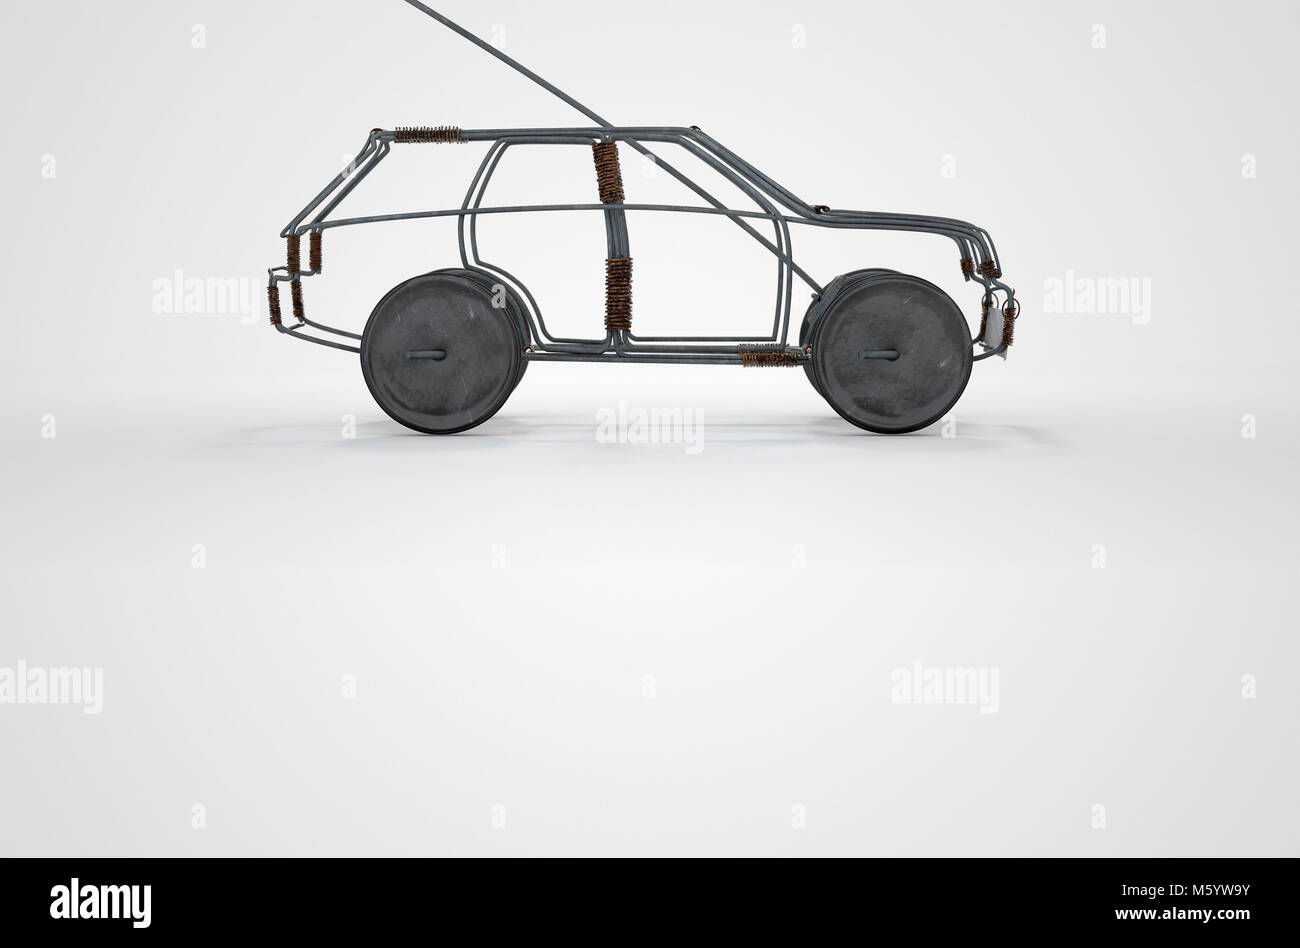 A traditional south african handmade wire toy car made out of metal ...